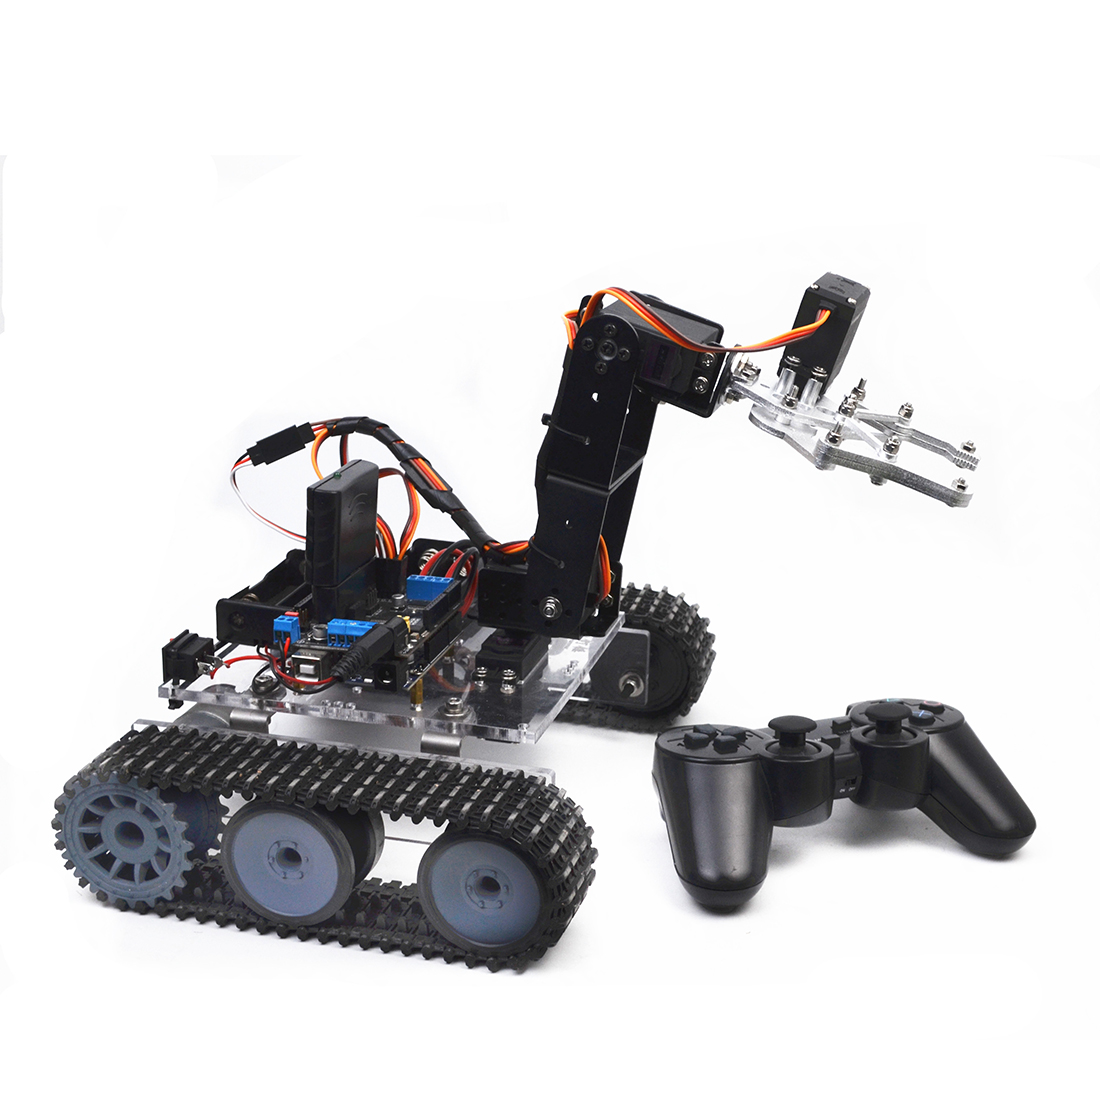 Hot Sale DIY Programmable Tank 4DOF Metal Mechanical Arm Robot Kit (Without Battery) Model Educational Toy Gift For Kid Adult